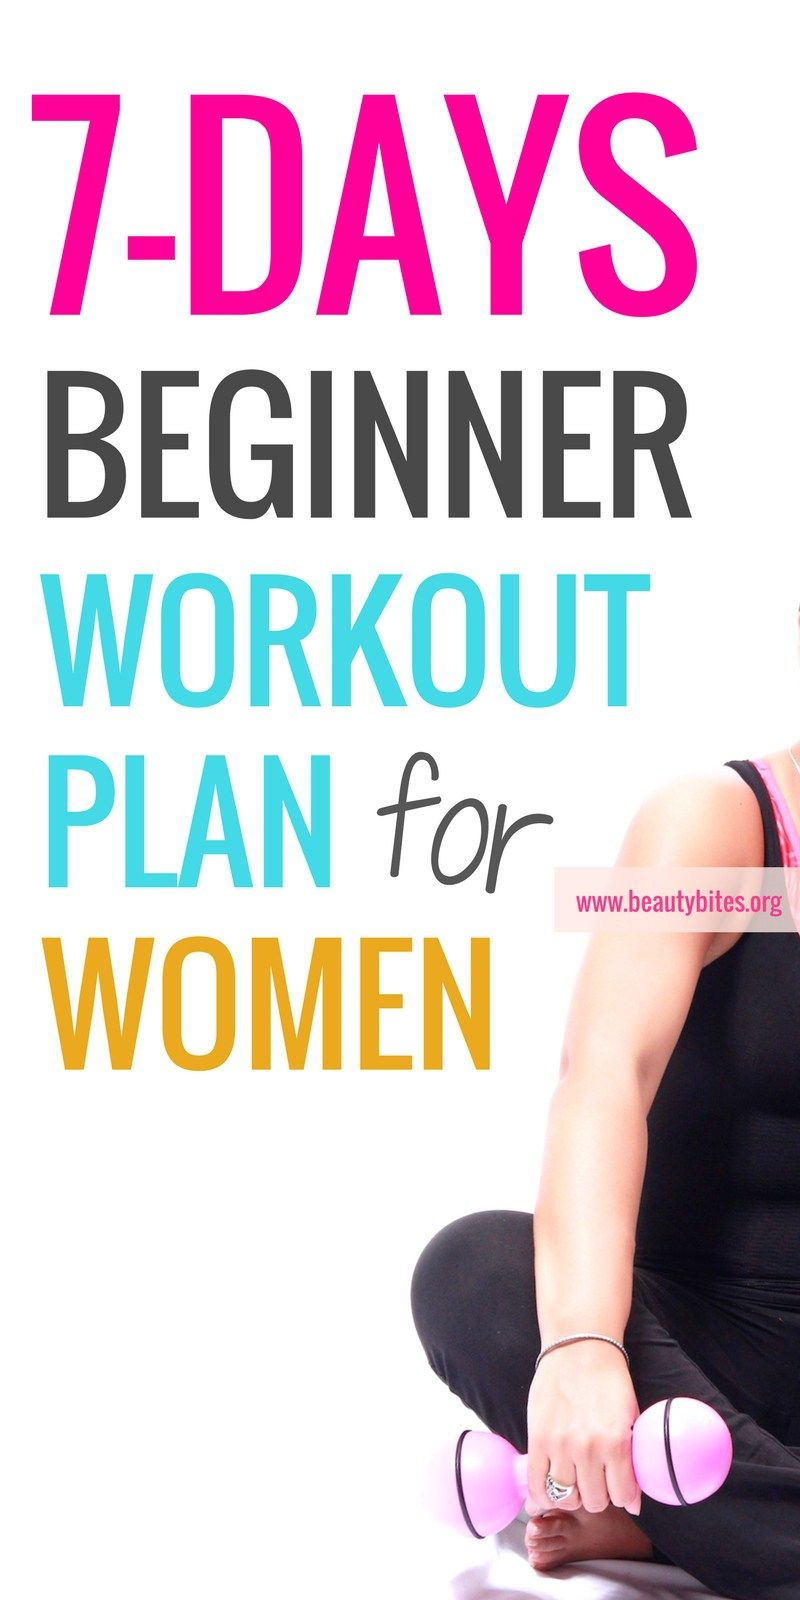 One Week Beginner Workout Plan For Women To Lose Weight - Beauty Bites